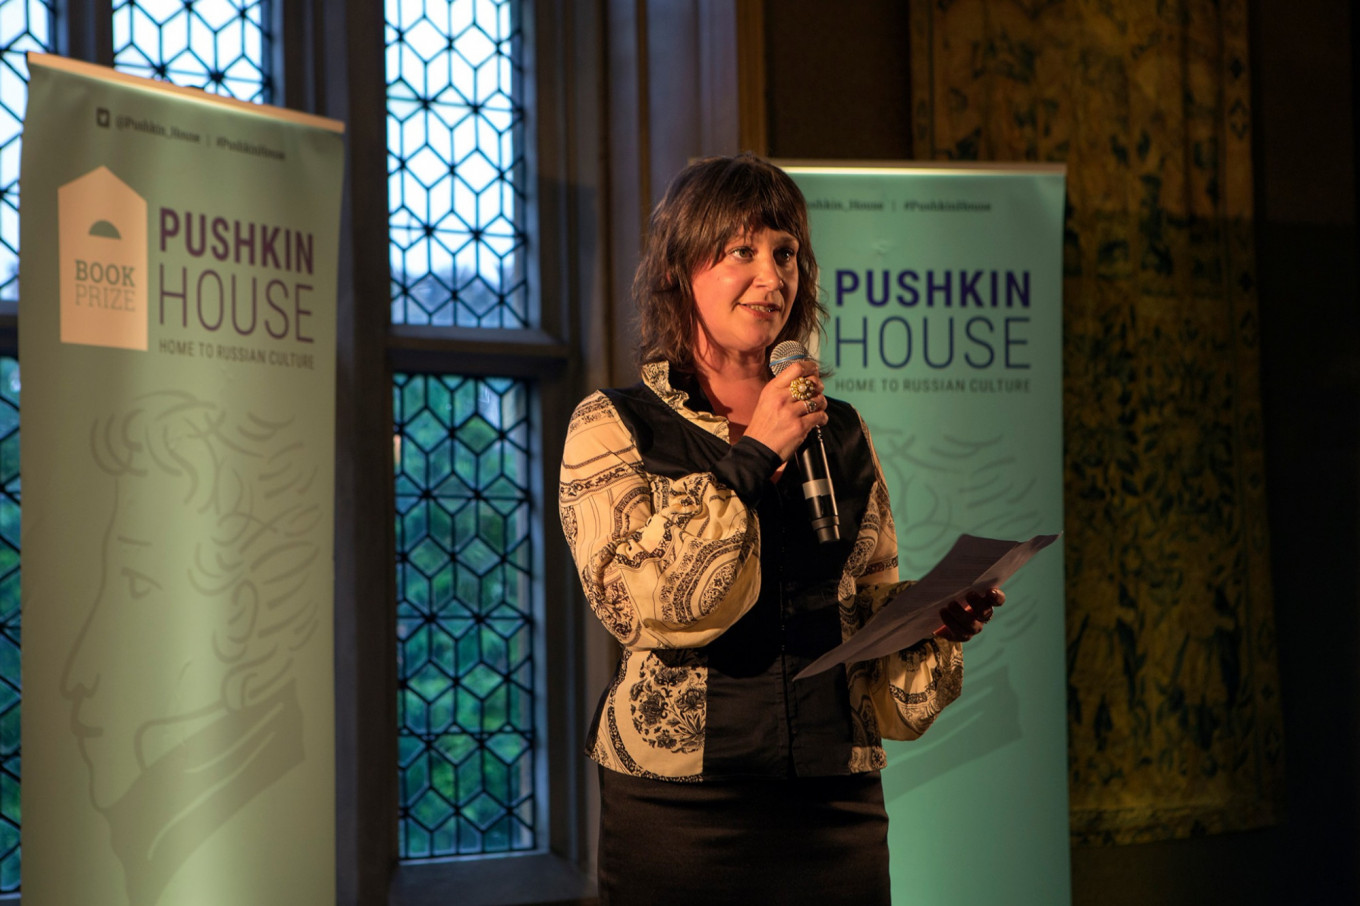 Pushkin House executive director Clementine Cecil at the awards ceremony.				 				Luke Tchalenko